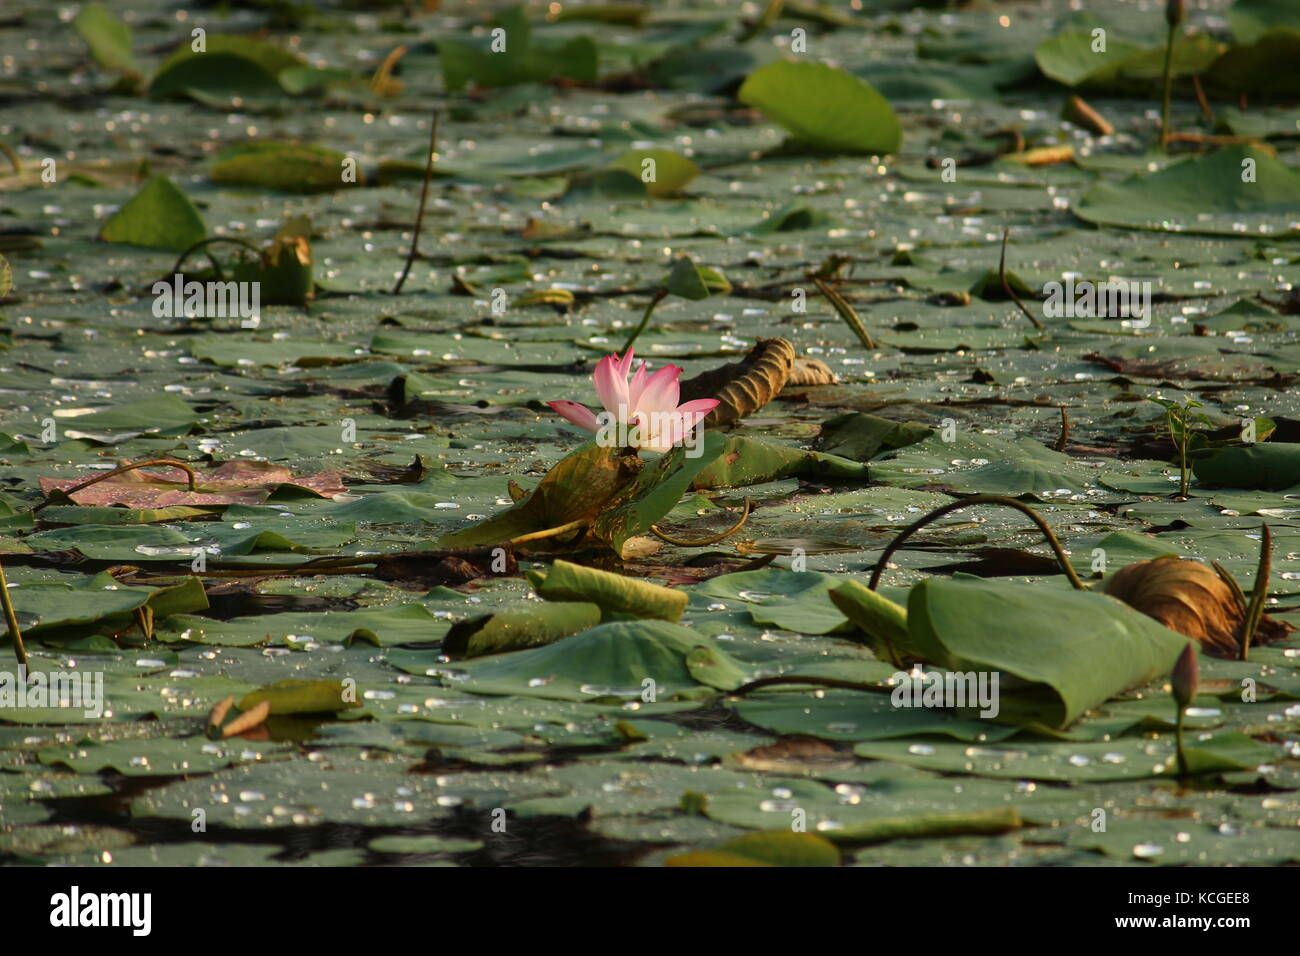 To be a good person u need not have to be in a good company, like the lotus it grows in damp & dirty water but it Stock Photo